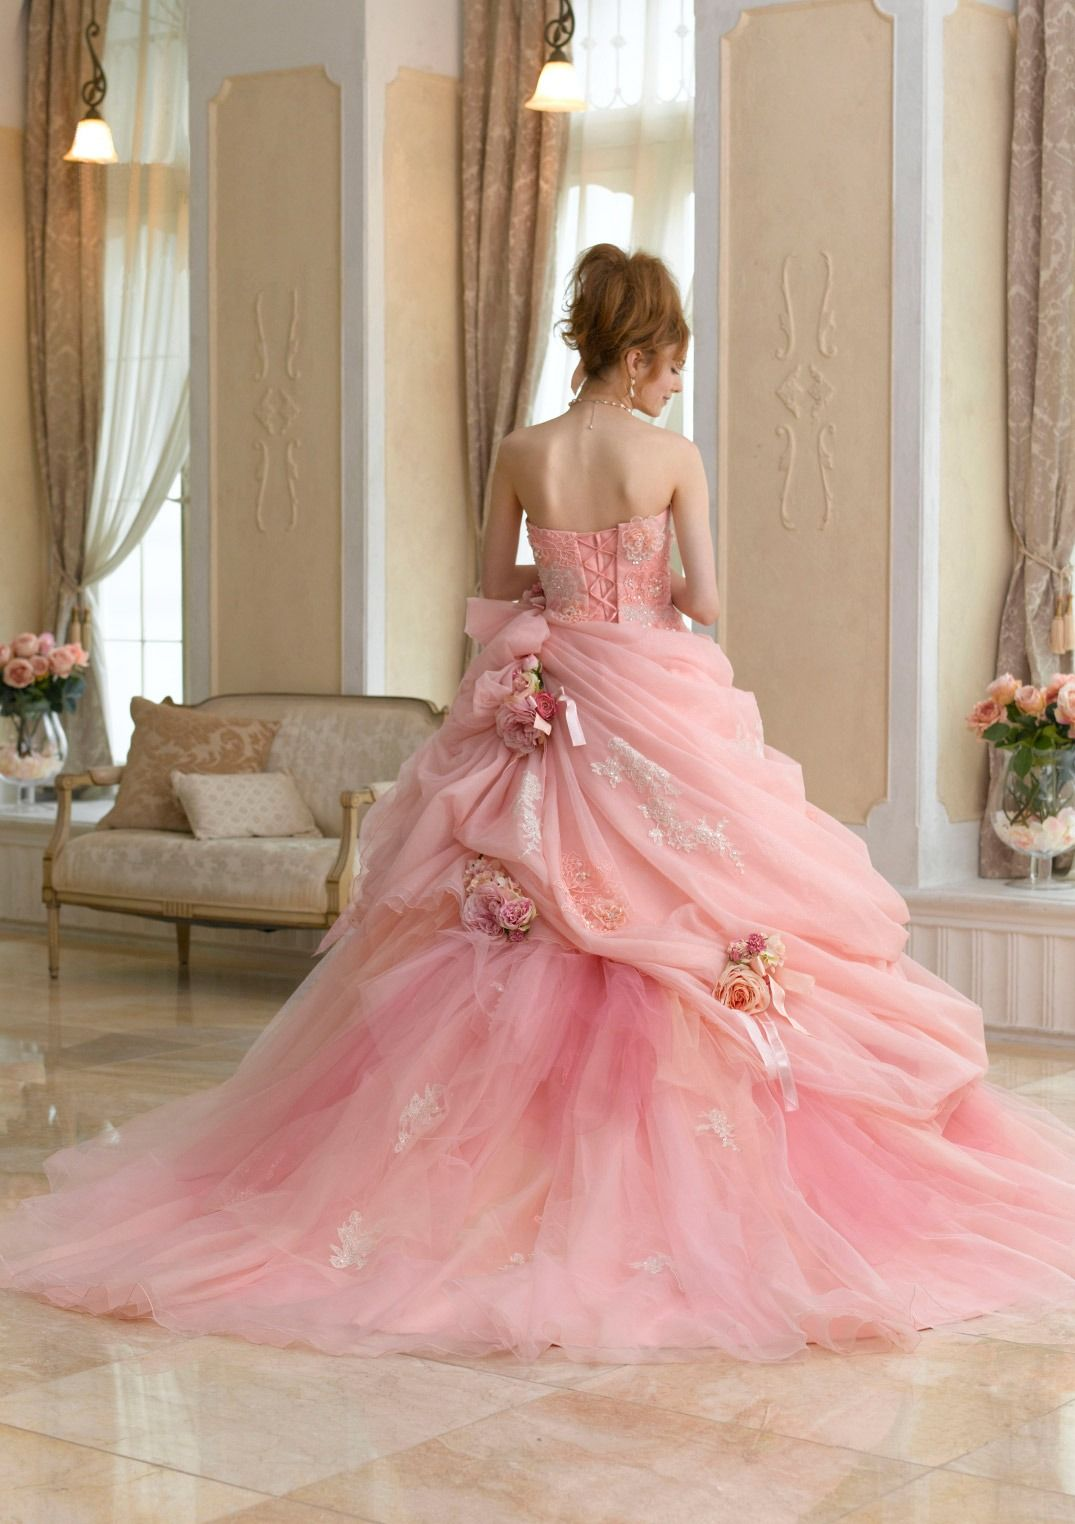 dball~dress ballgown | Pretty in pink | Pinterest | Rosas, Rosas ...